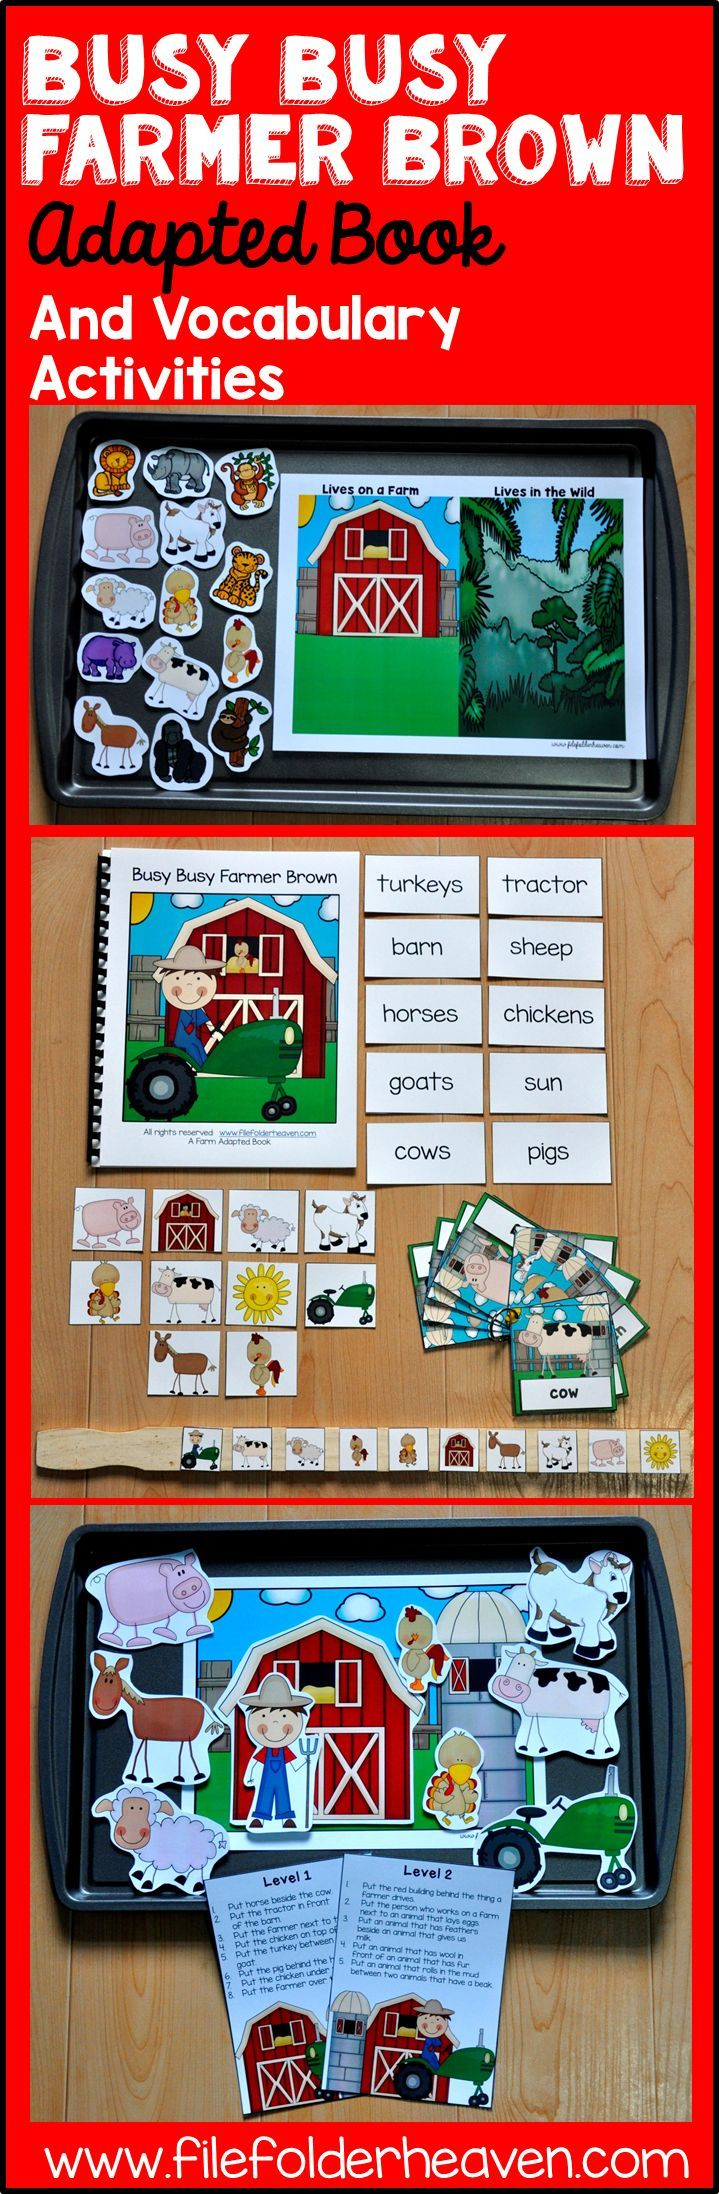 """""""Busy Busy Farmer Brown  drives his tractor round and round!"""" This unit has been updated! It now includes an updated adapted book and 4 new vocabulary extension activities that focus on sequencing, classification, labeling, and positional concepts!"""